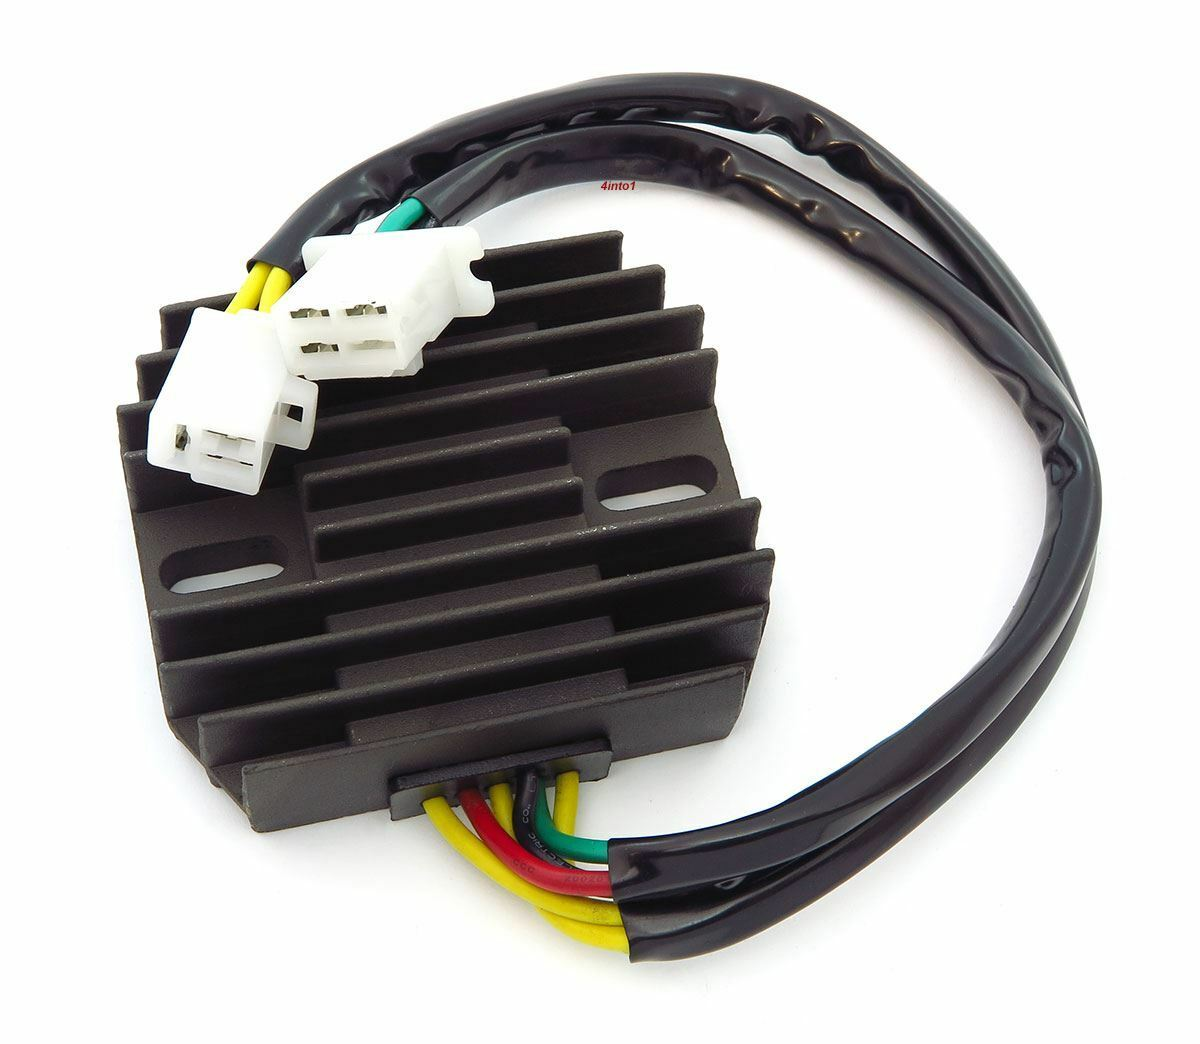 Electrosport Regulator Rectifier Combo Honda Cb400 Cm400 Cb450 1983 Shadow Motorcycle Cm450 1 Of 1free Shipping